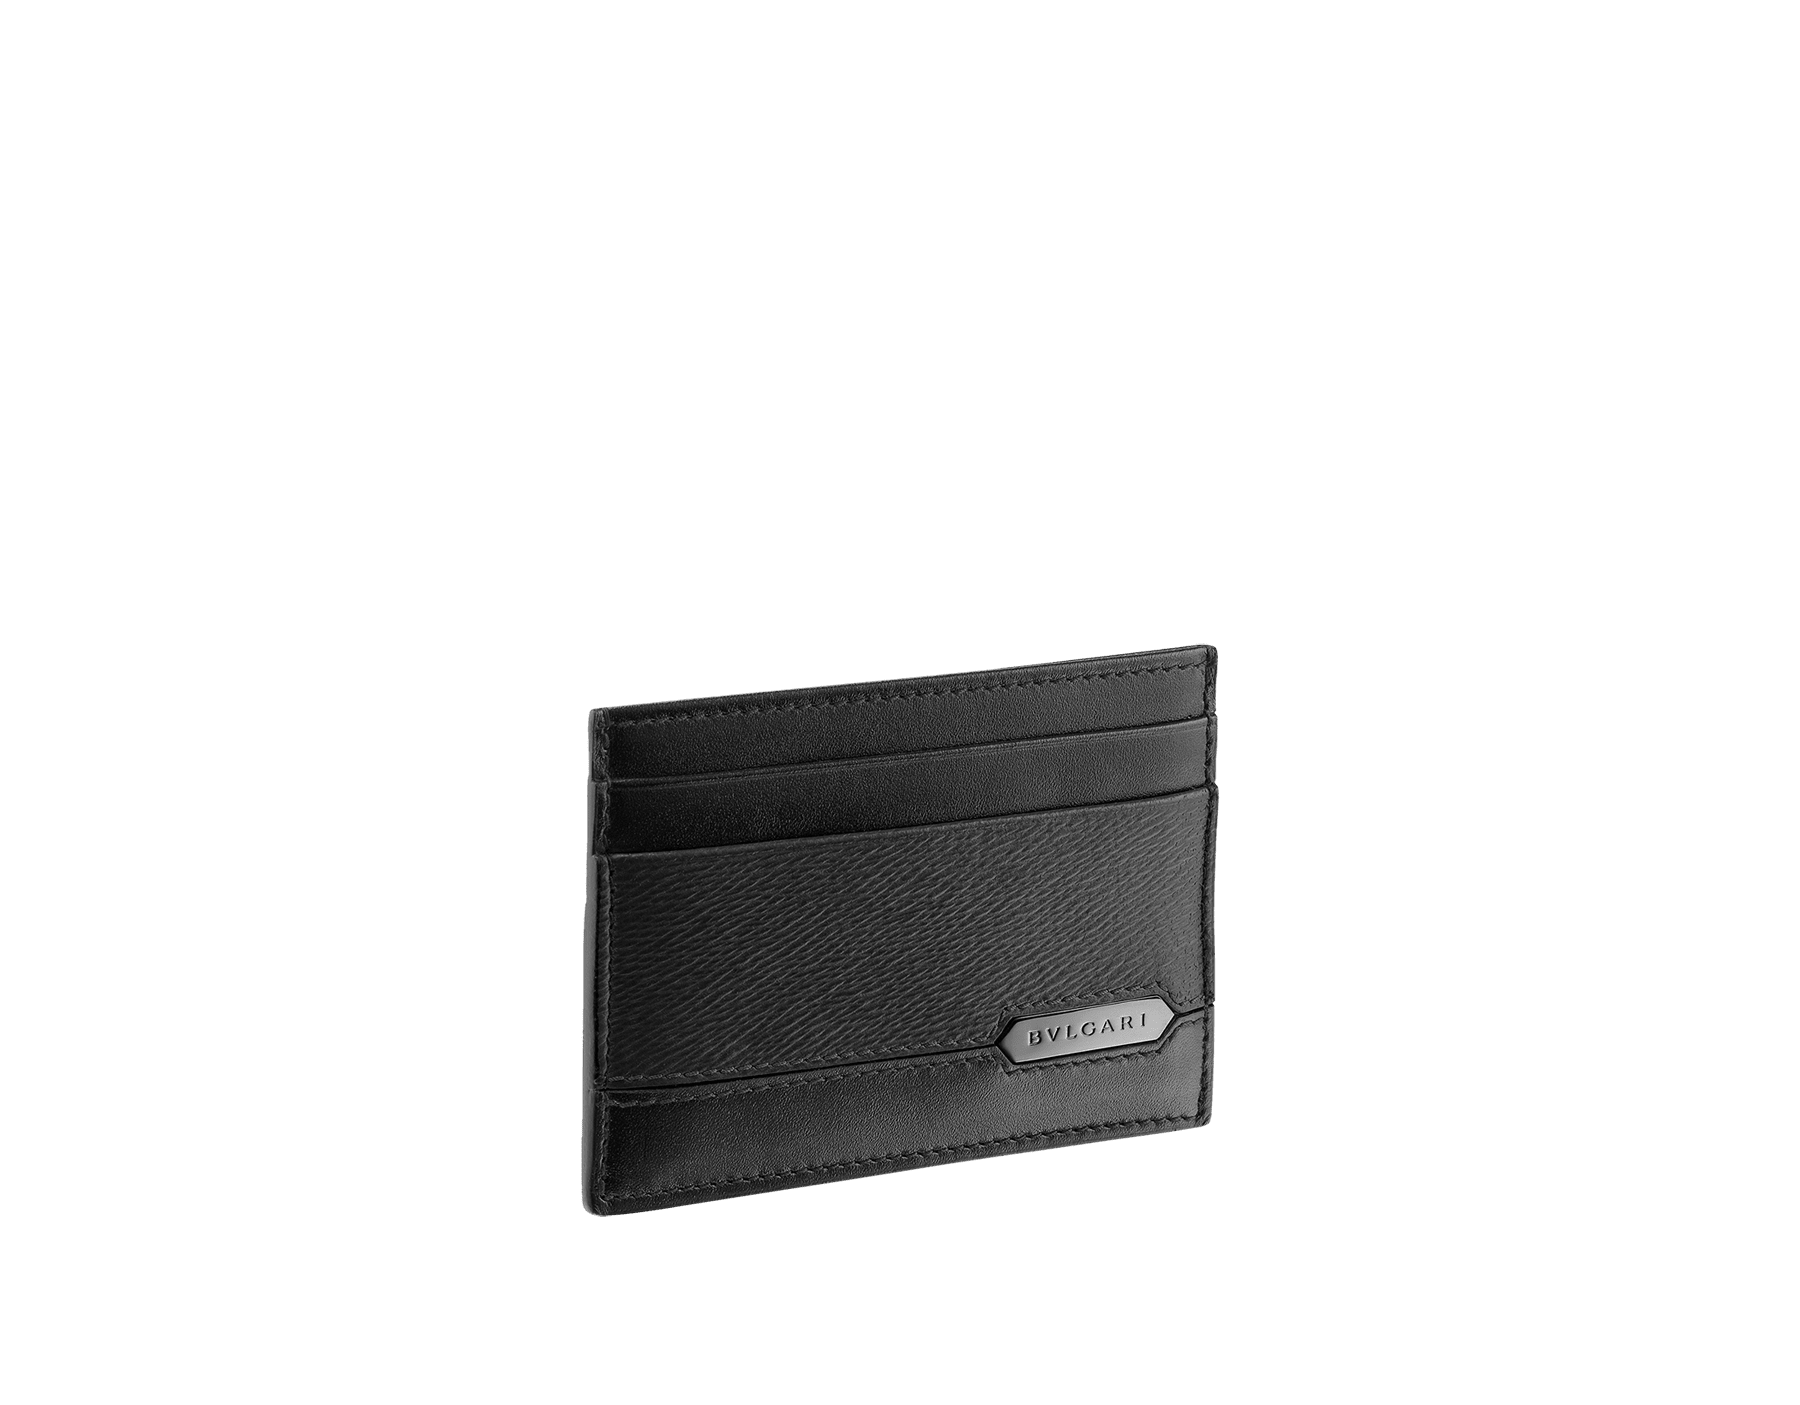 Credit card holder in black grazed calf leather and black calf leather. Bulgari logo on metal plate featuring the Scaglie motif finished in dark ruthenium. Four credit card slots and one compartment. 280883 image 1